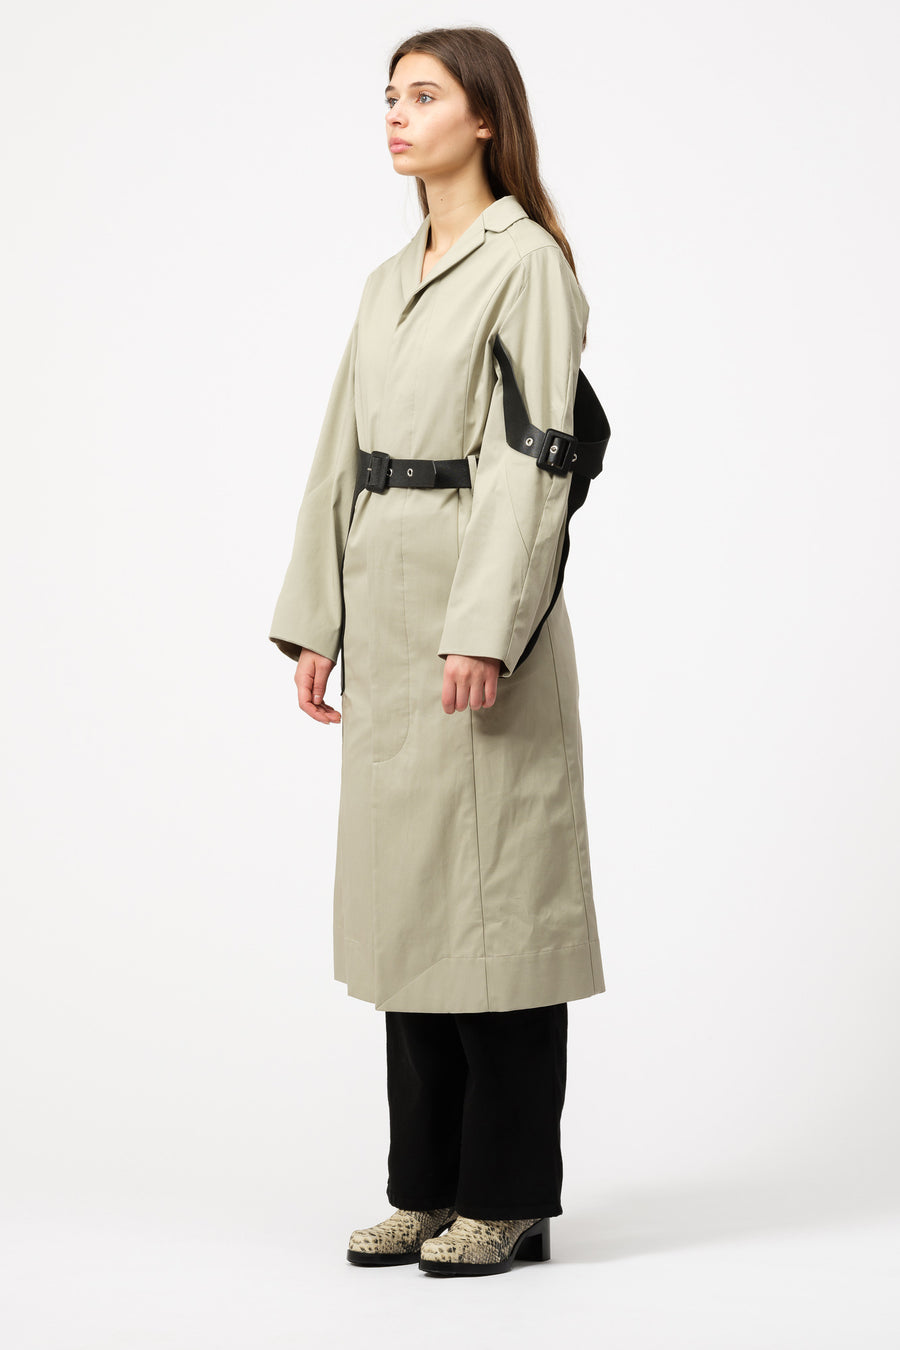 Pihakapi Trench Coat in Isabelline/Black - Notre